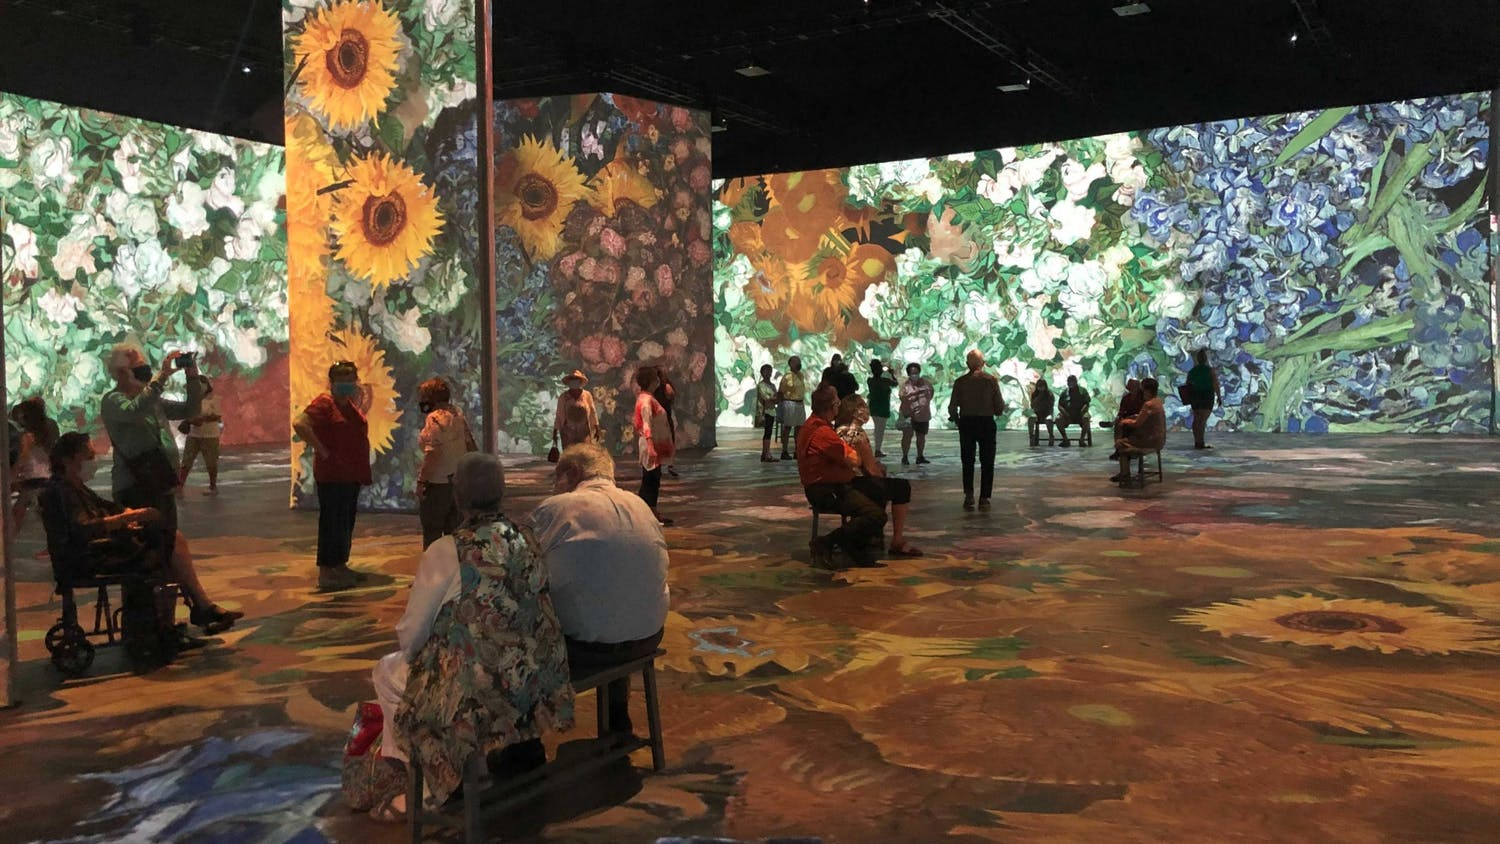 Many visitors said the final section, the Immersive Experience Room, is their favorite exhibit in the gallery.